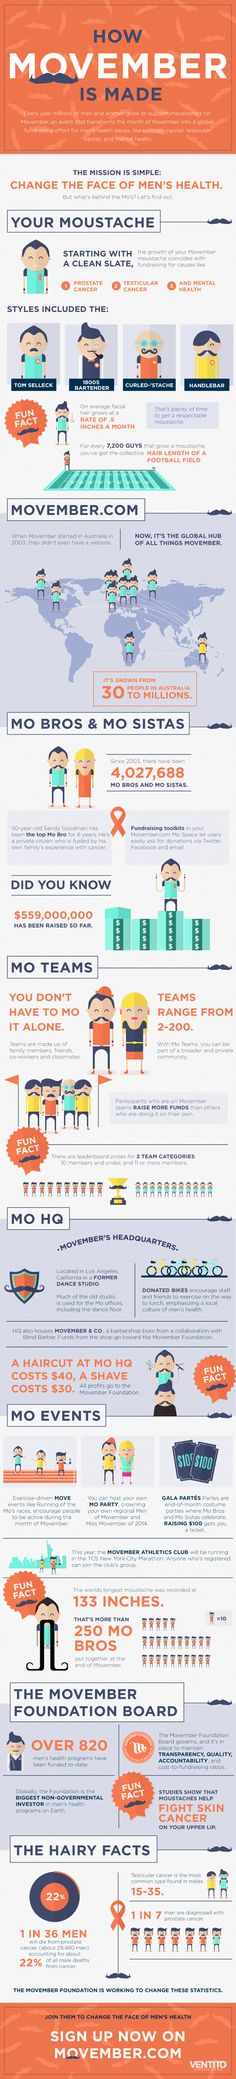 How Movember is Made #infographic #Movember #Cancer #Mustaches #infografía